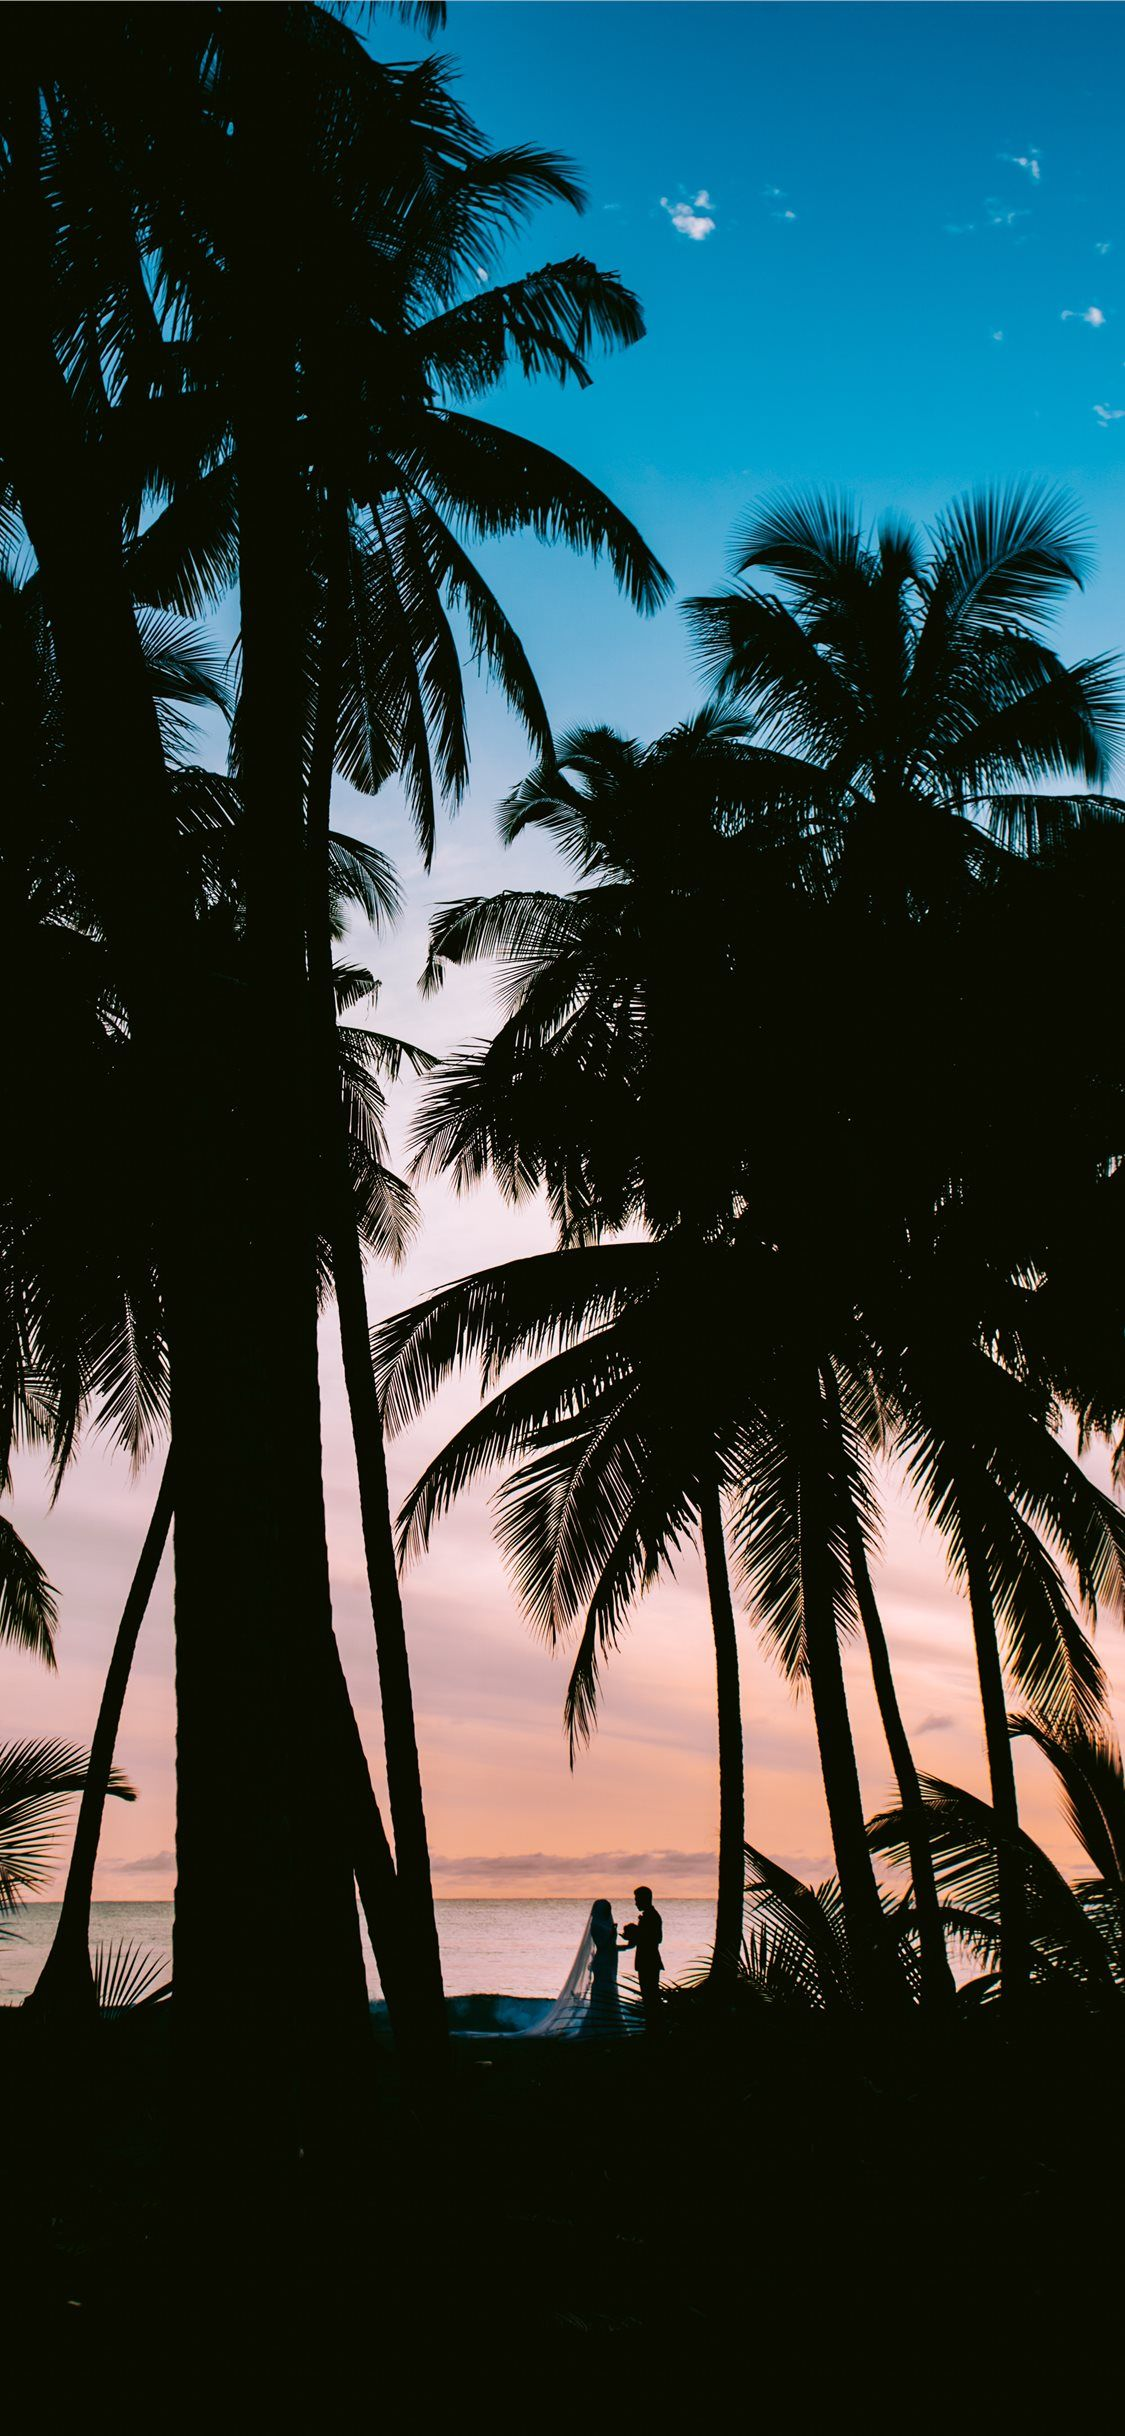 Wallpaper Iphone 11 148 In 2020 Palm Trees Wallpaper Beautiful Wallpapers Backgrounds Phone Wallpapers